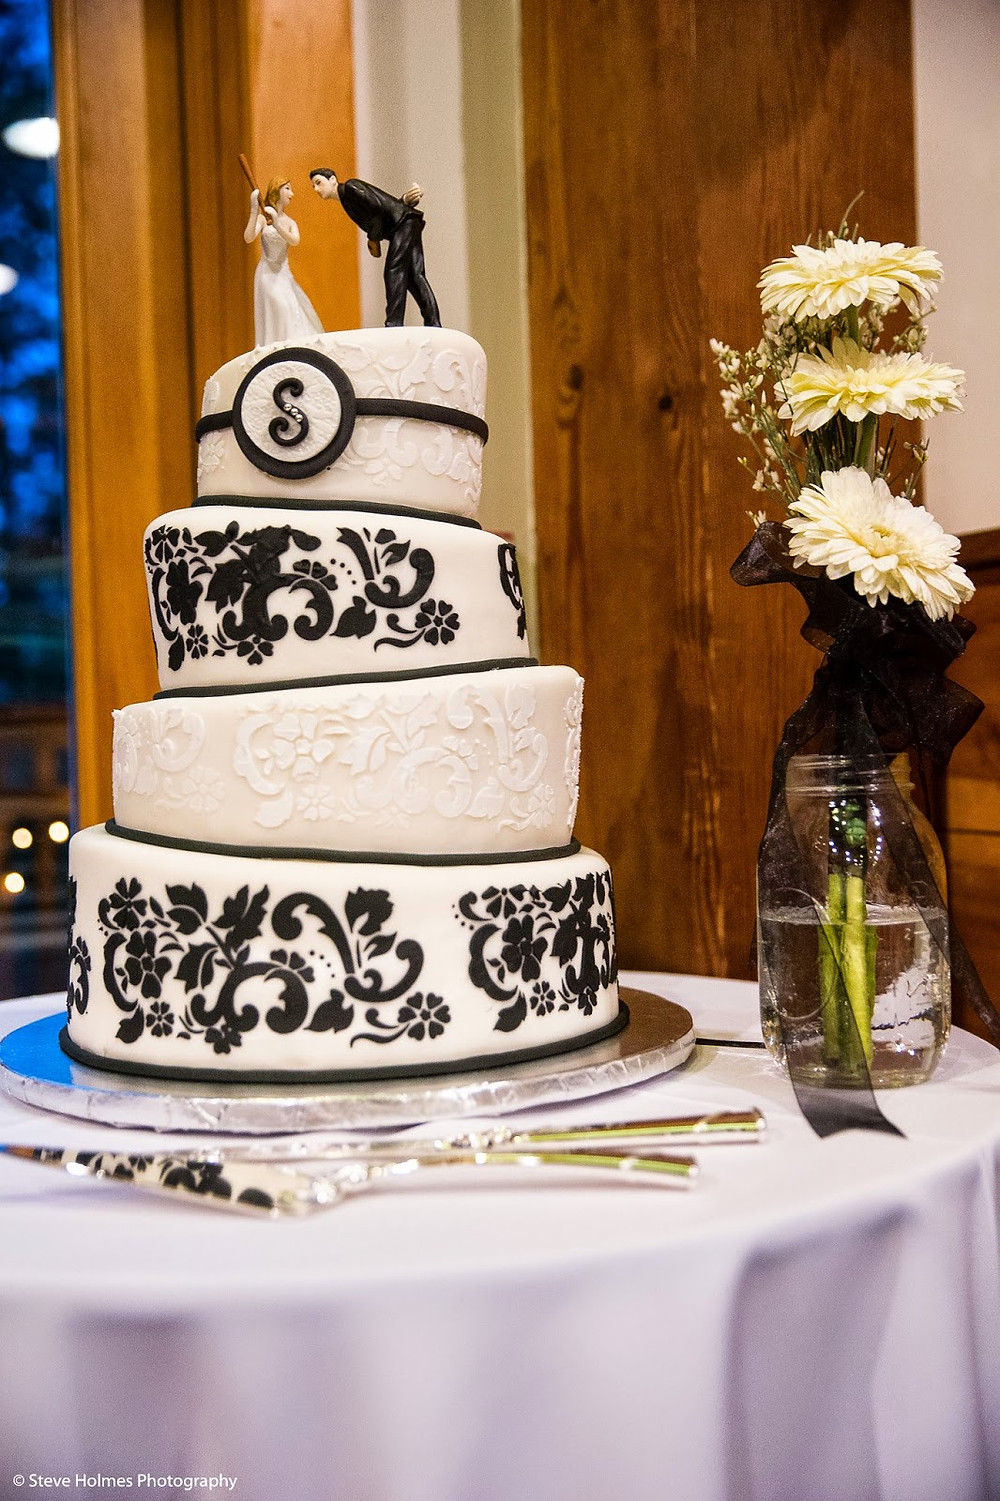 www.inked-events.com